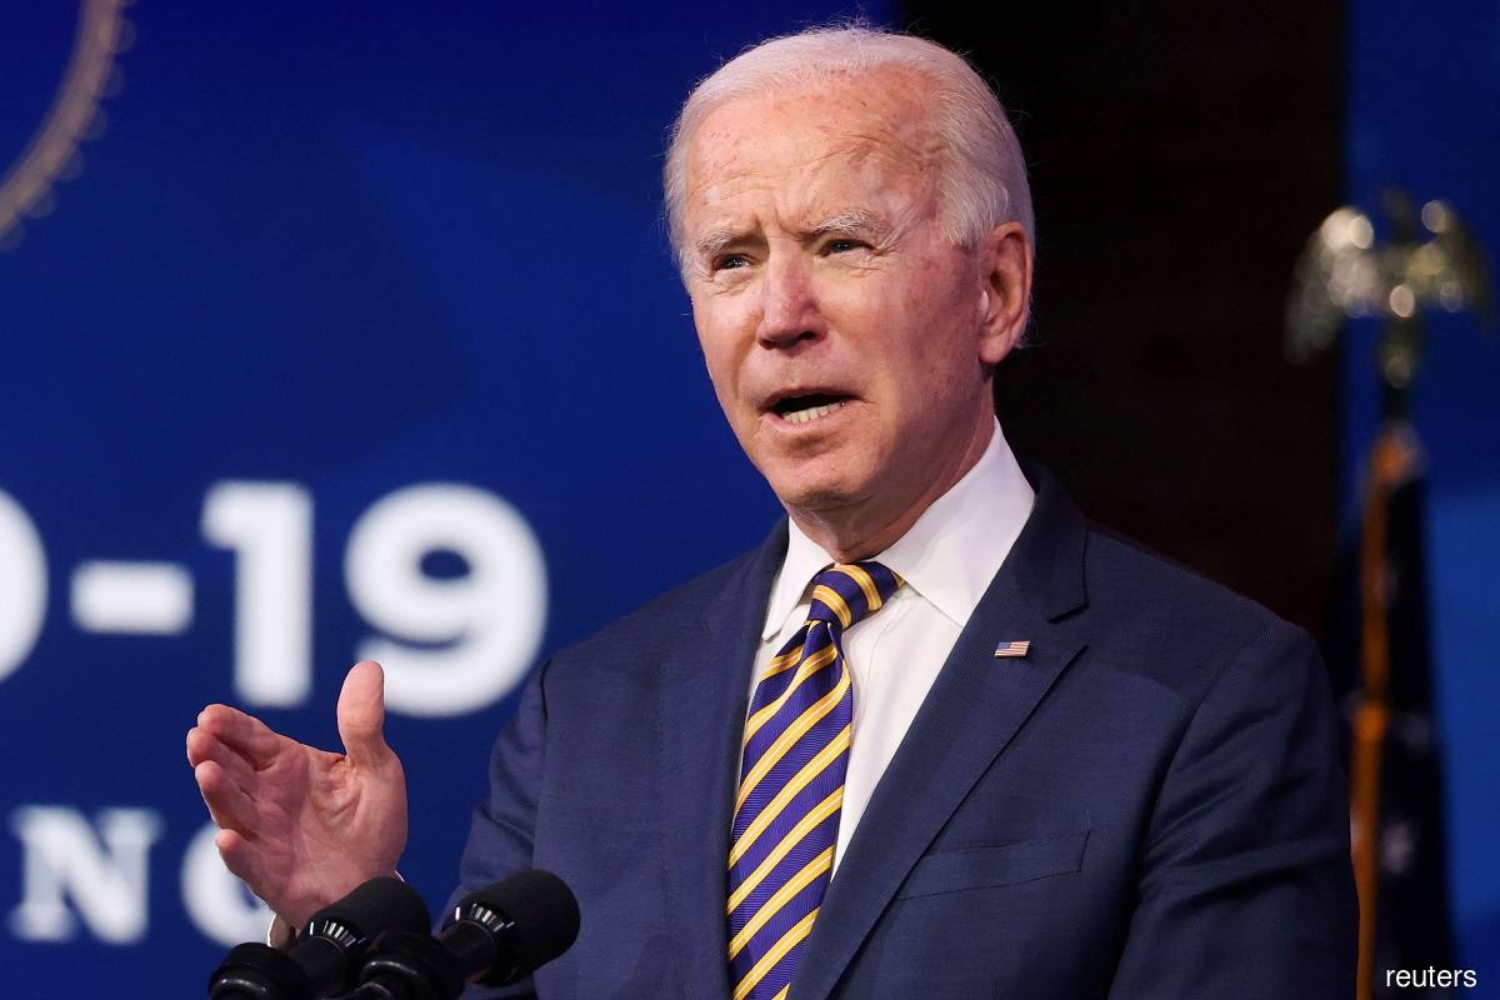 Biden to block Trump's plan to lift Covid-19 European travel restrictions